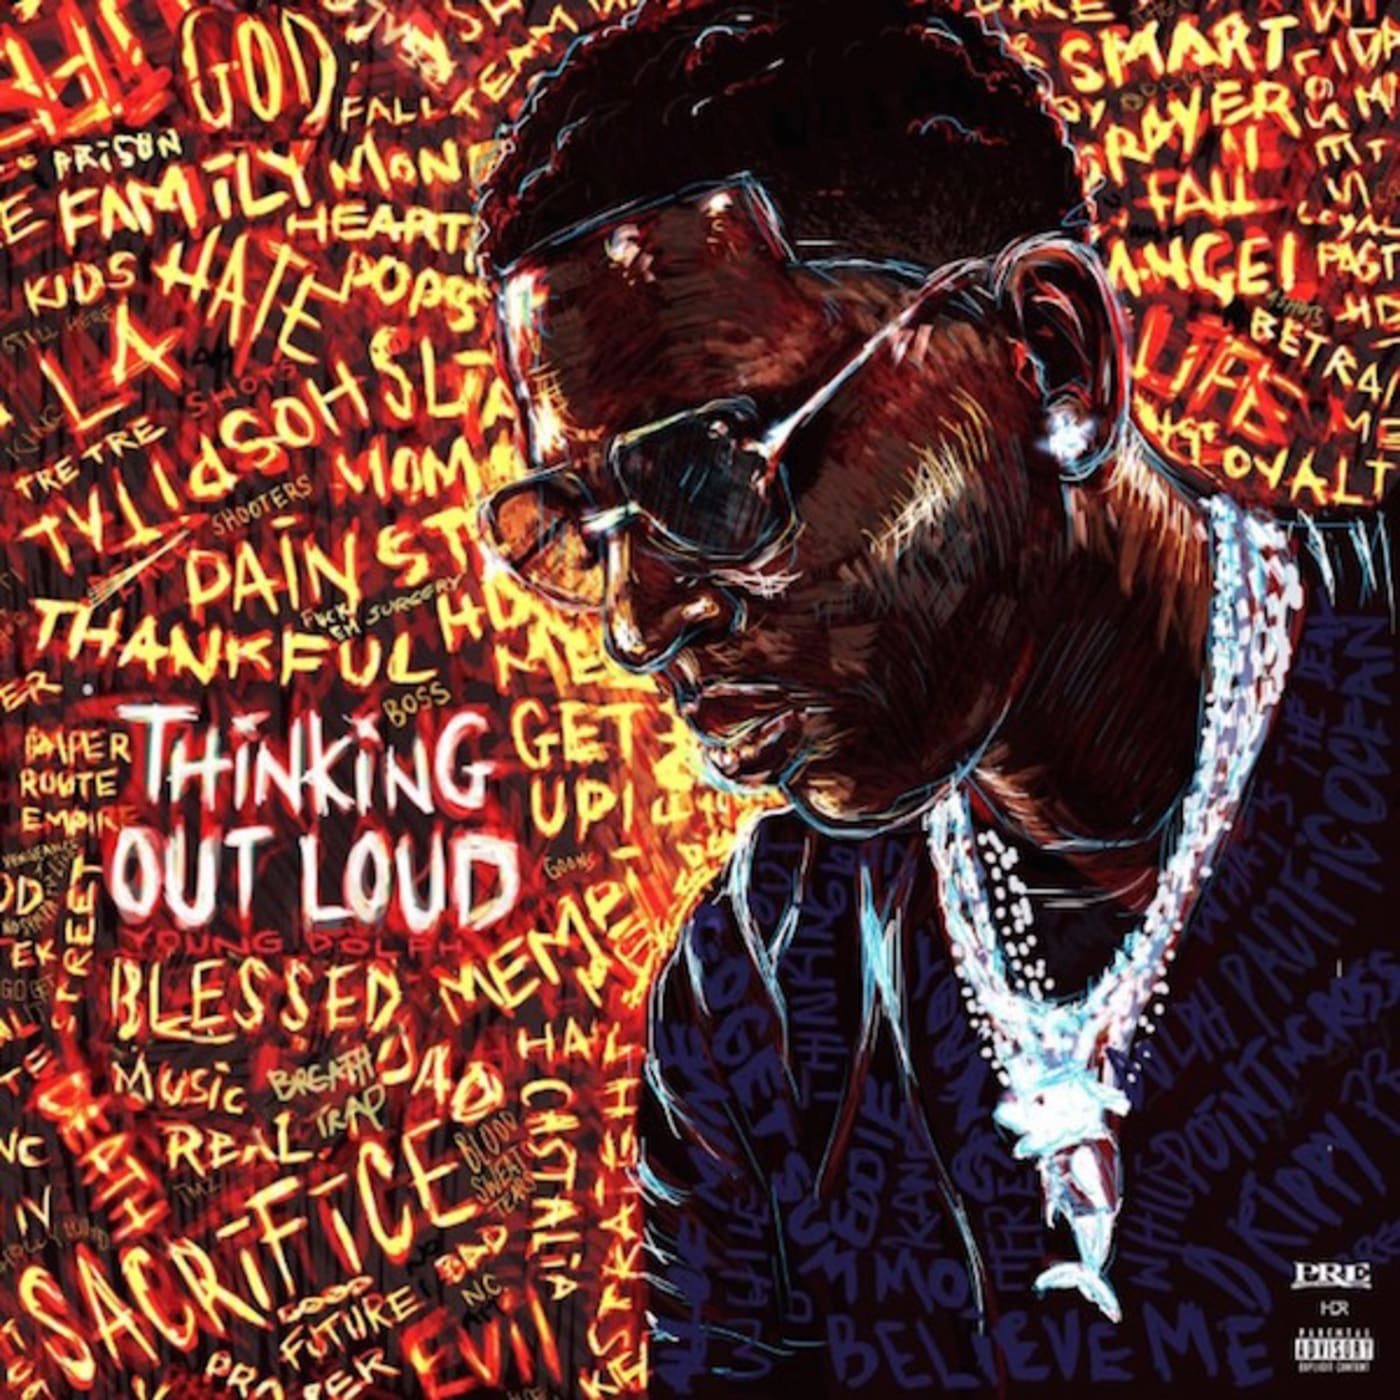 Dolph Out Loud